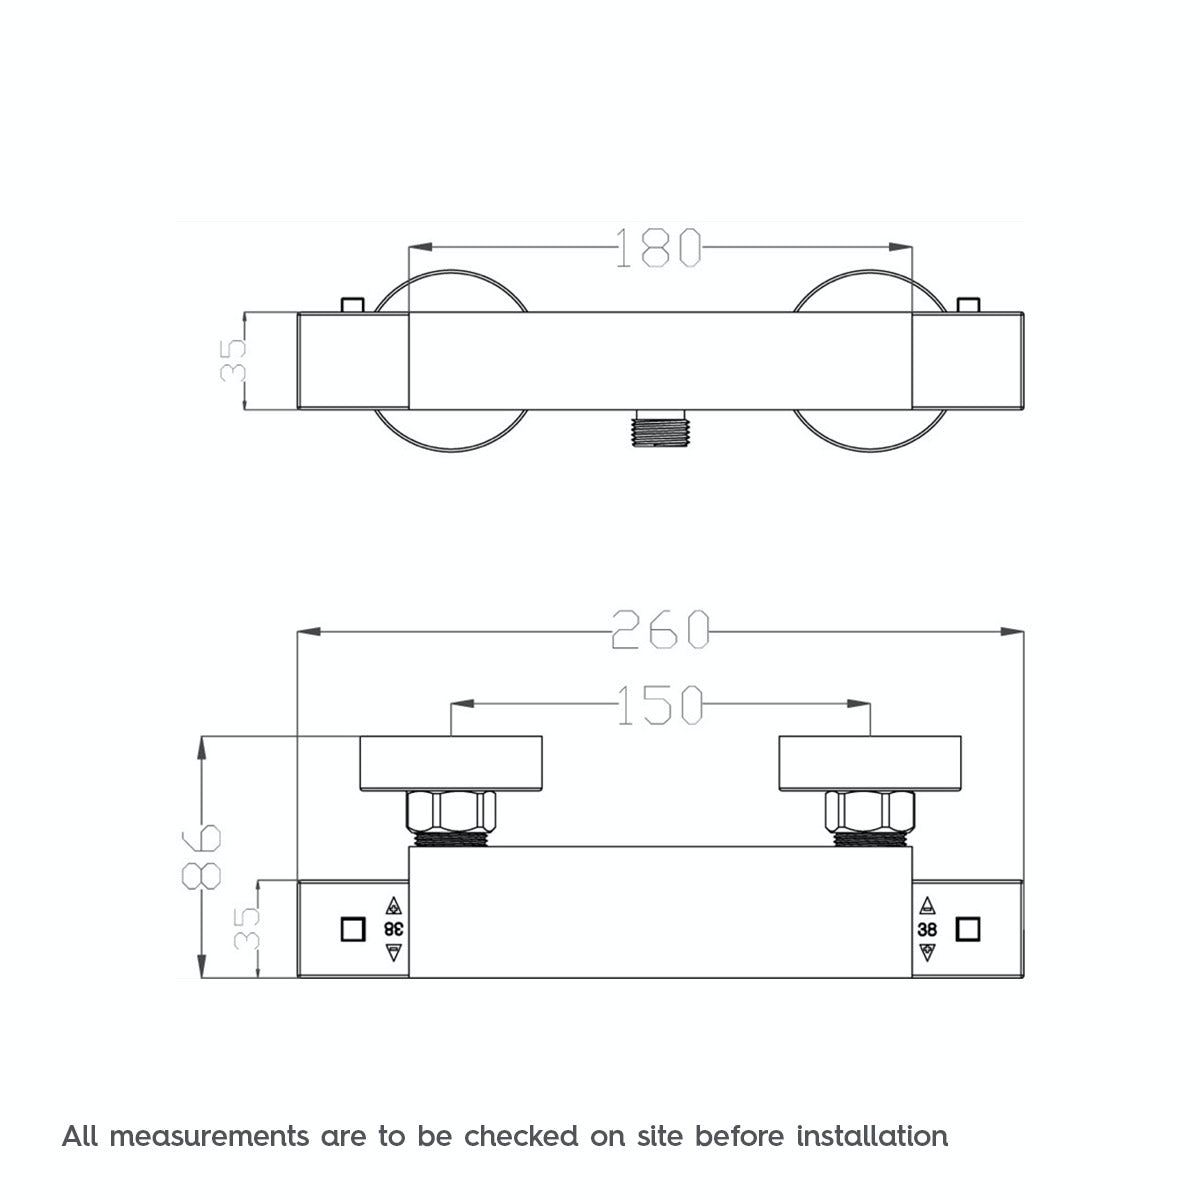 Dimensions for Orchard Quadra thermostatic bar shower valve